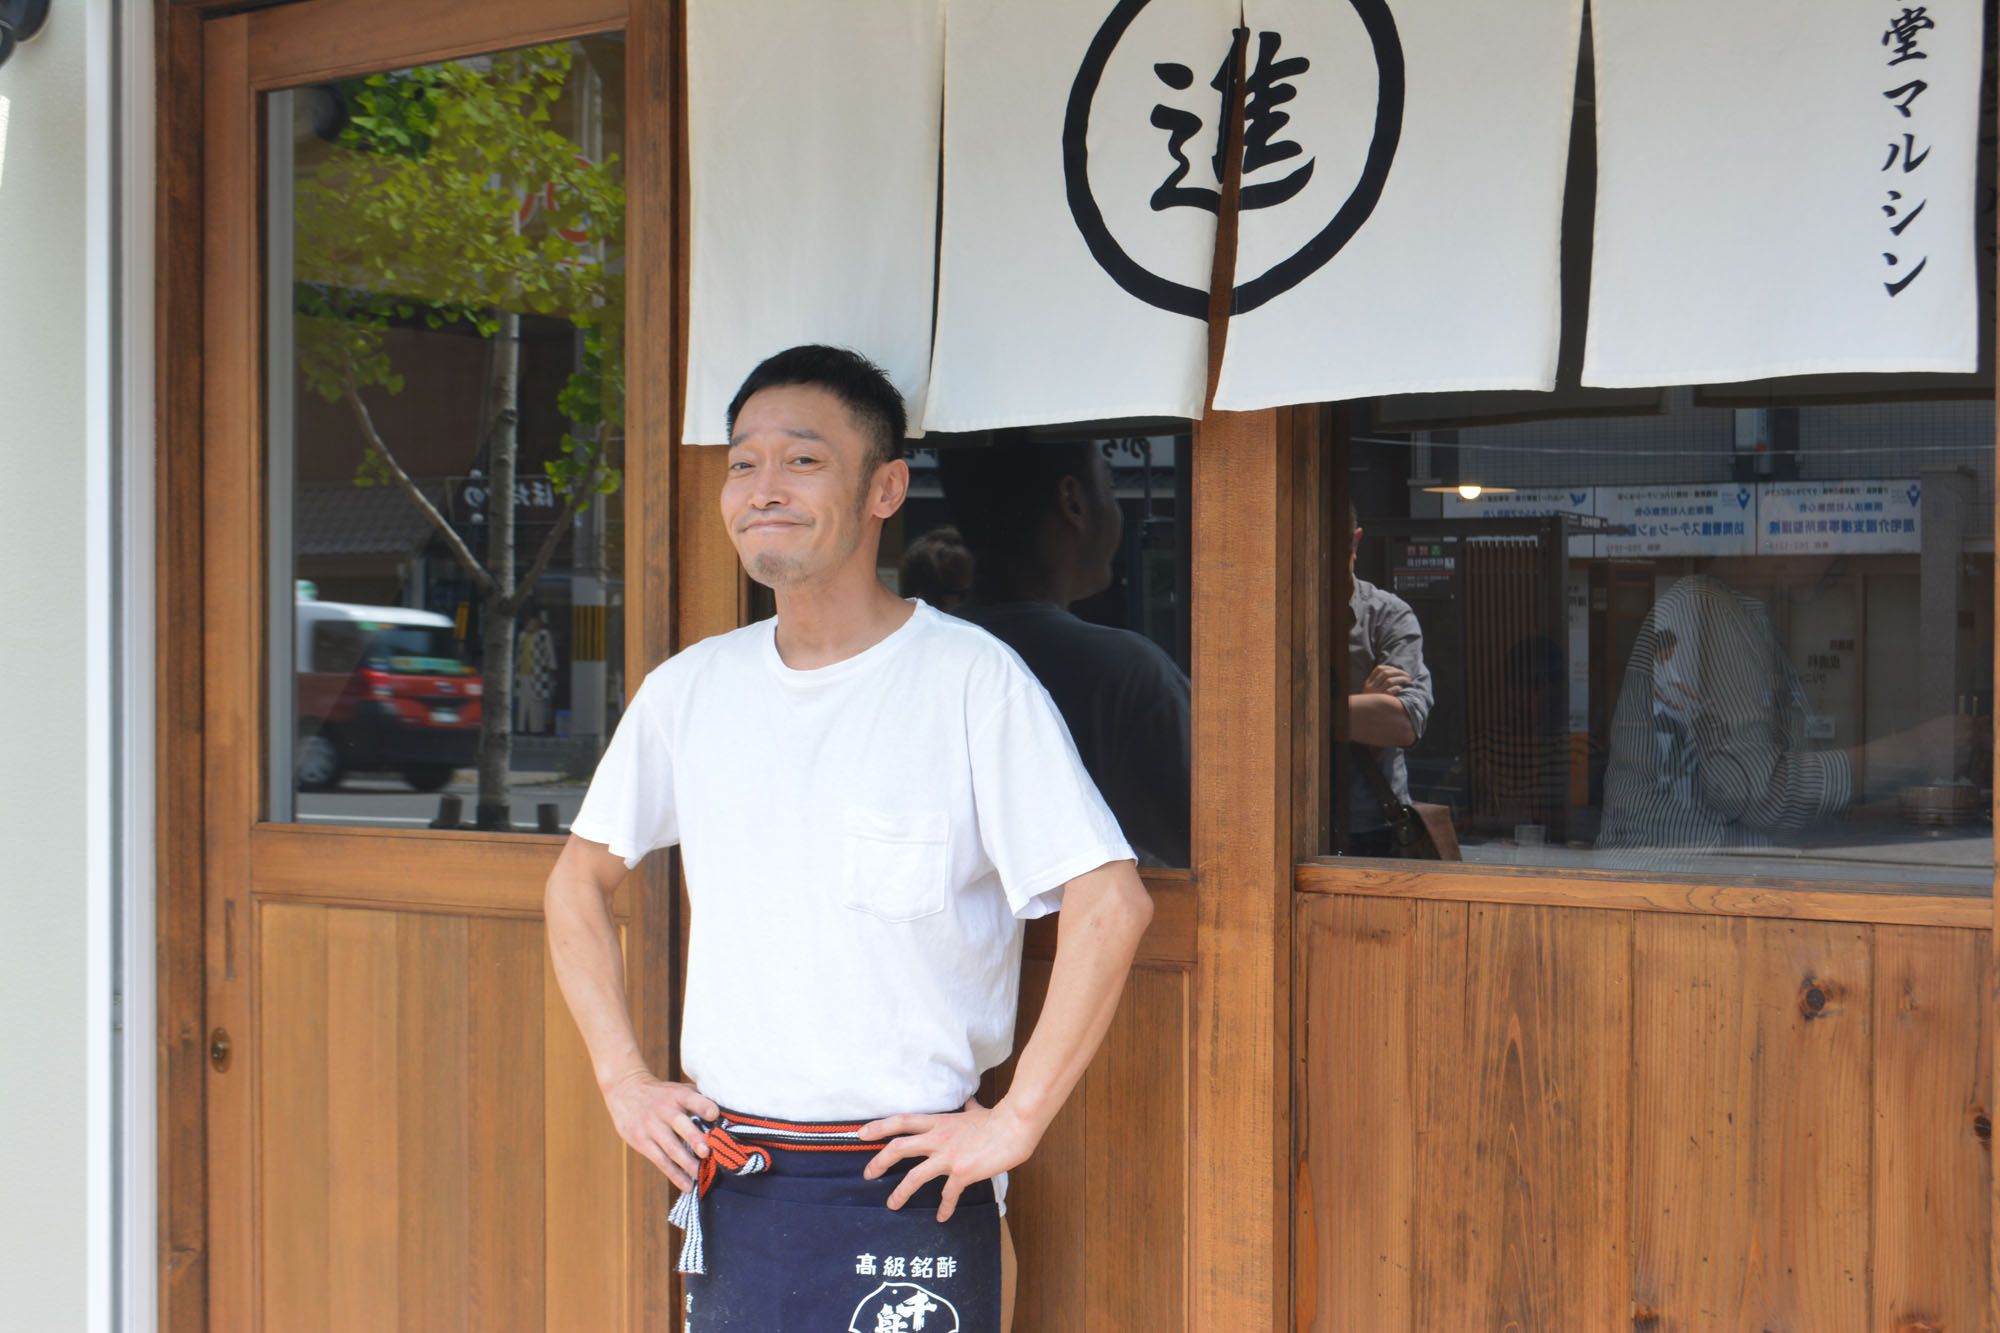 Punk and proud: Before opening Shokudo Marushin, Shintaro Nakamura was a founding member and vocalist for punk band First Alert. | J.J. O'DONOGHUE